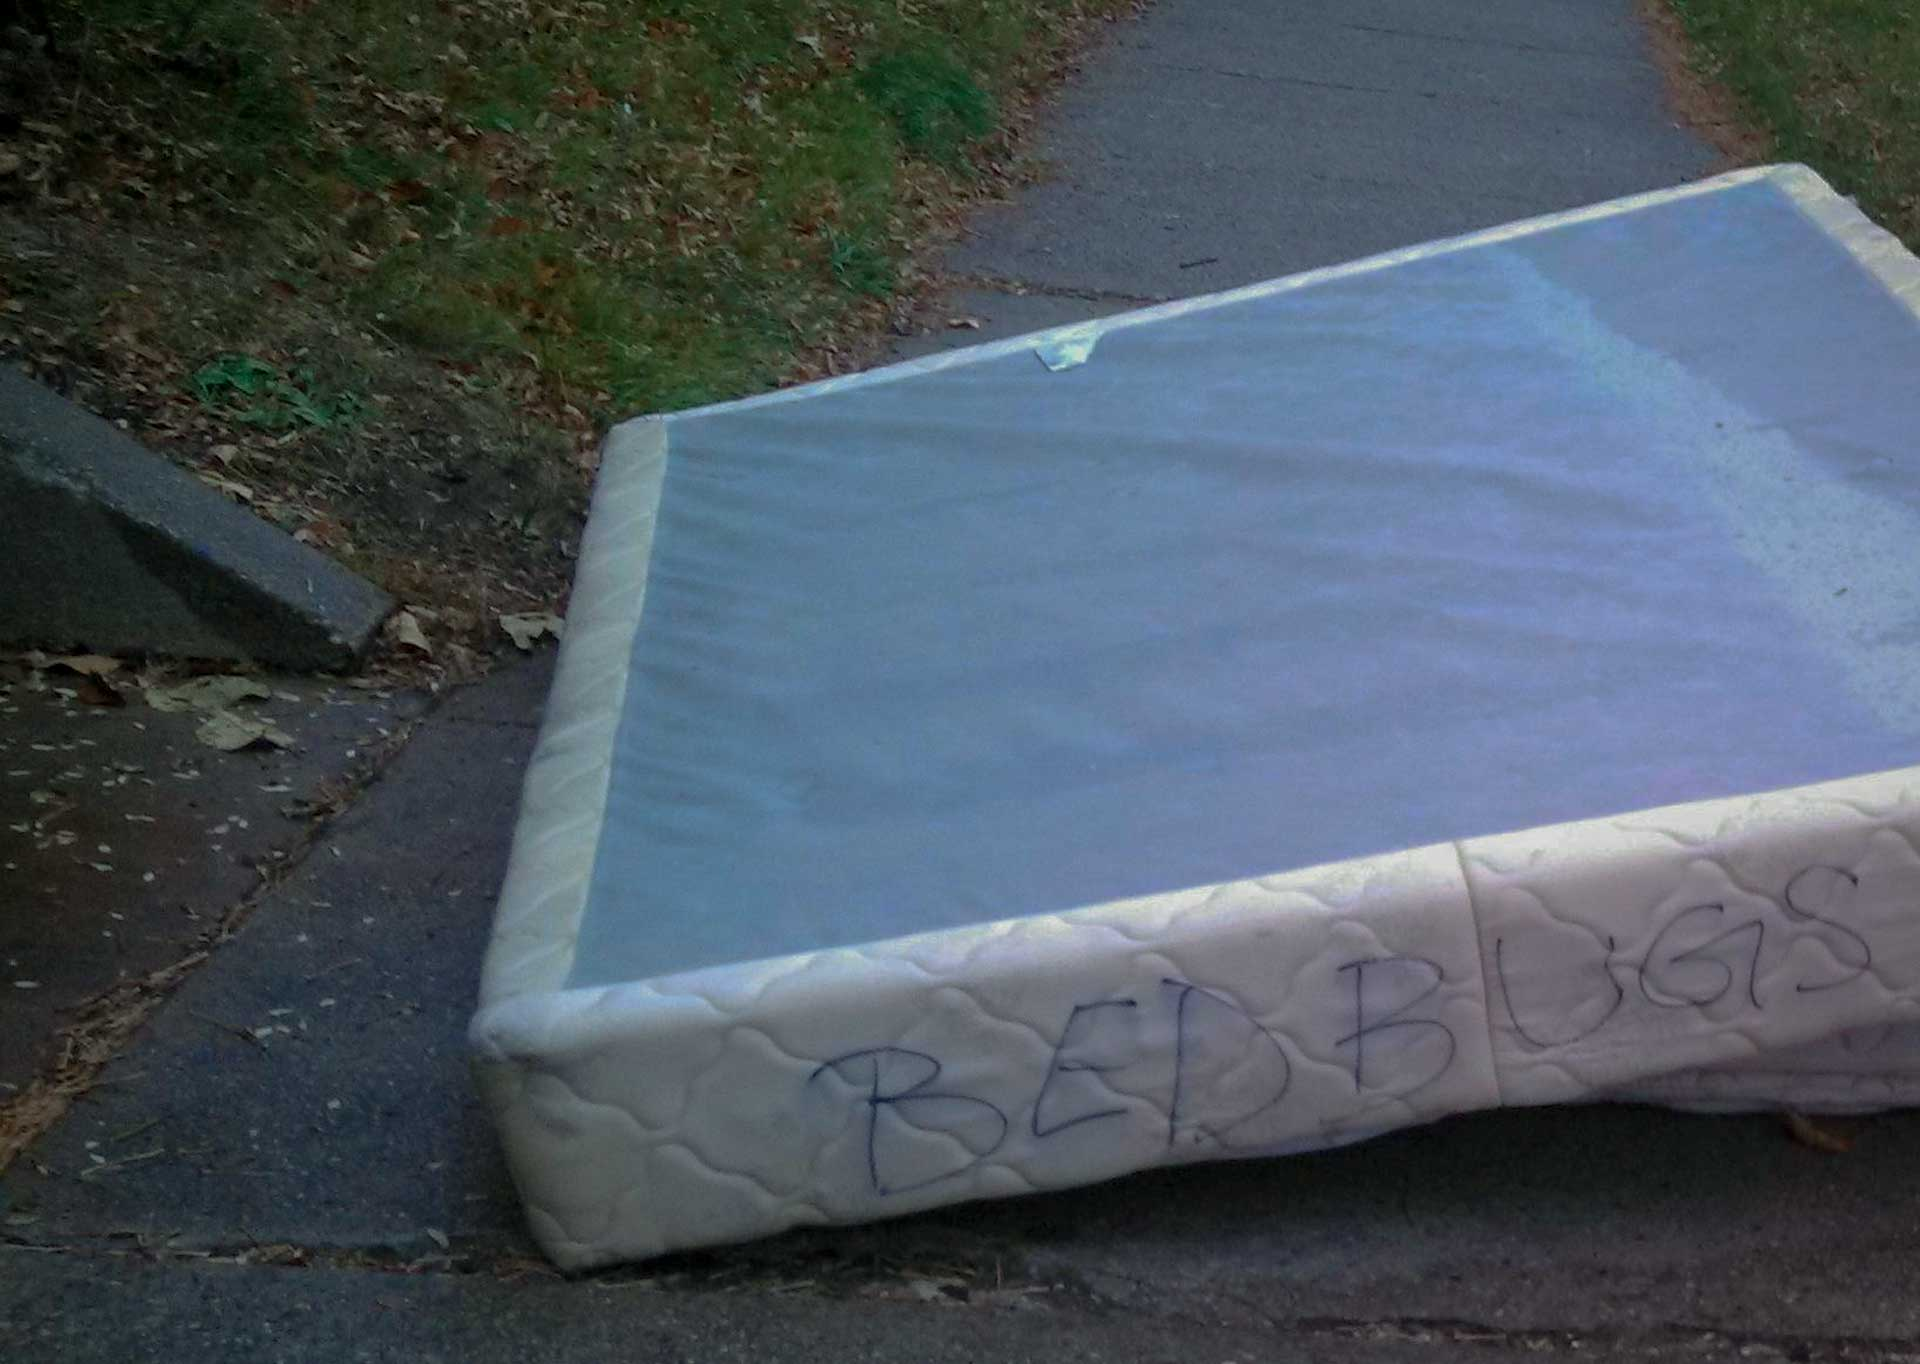 A Box Spring discarded by the curtsied